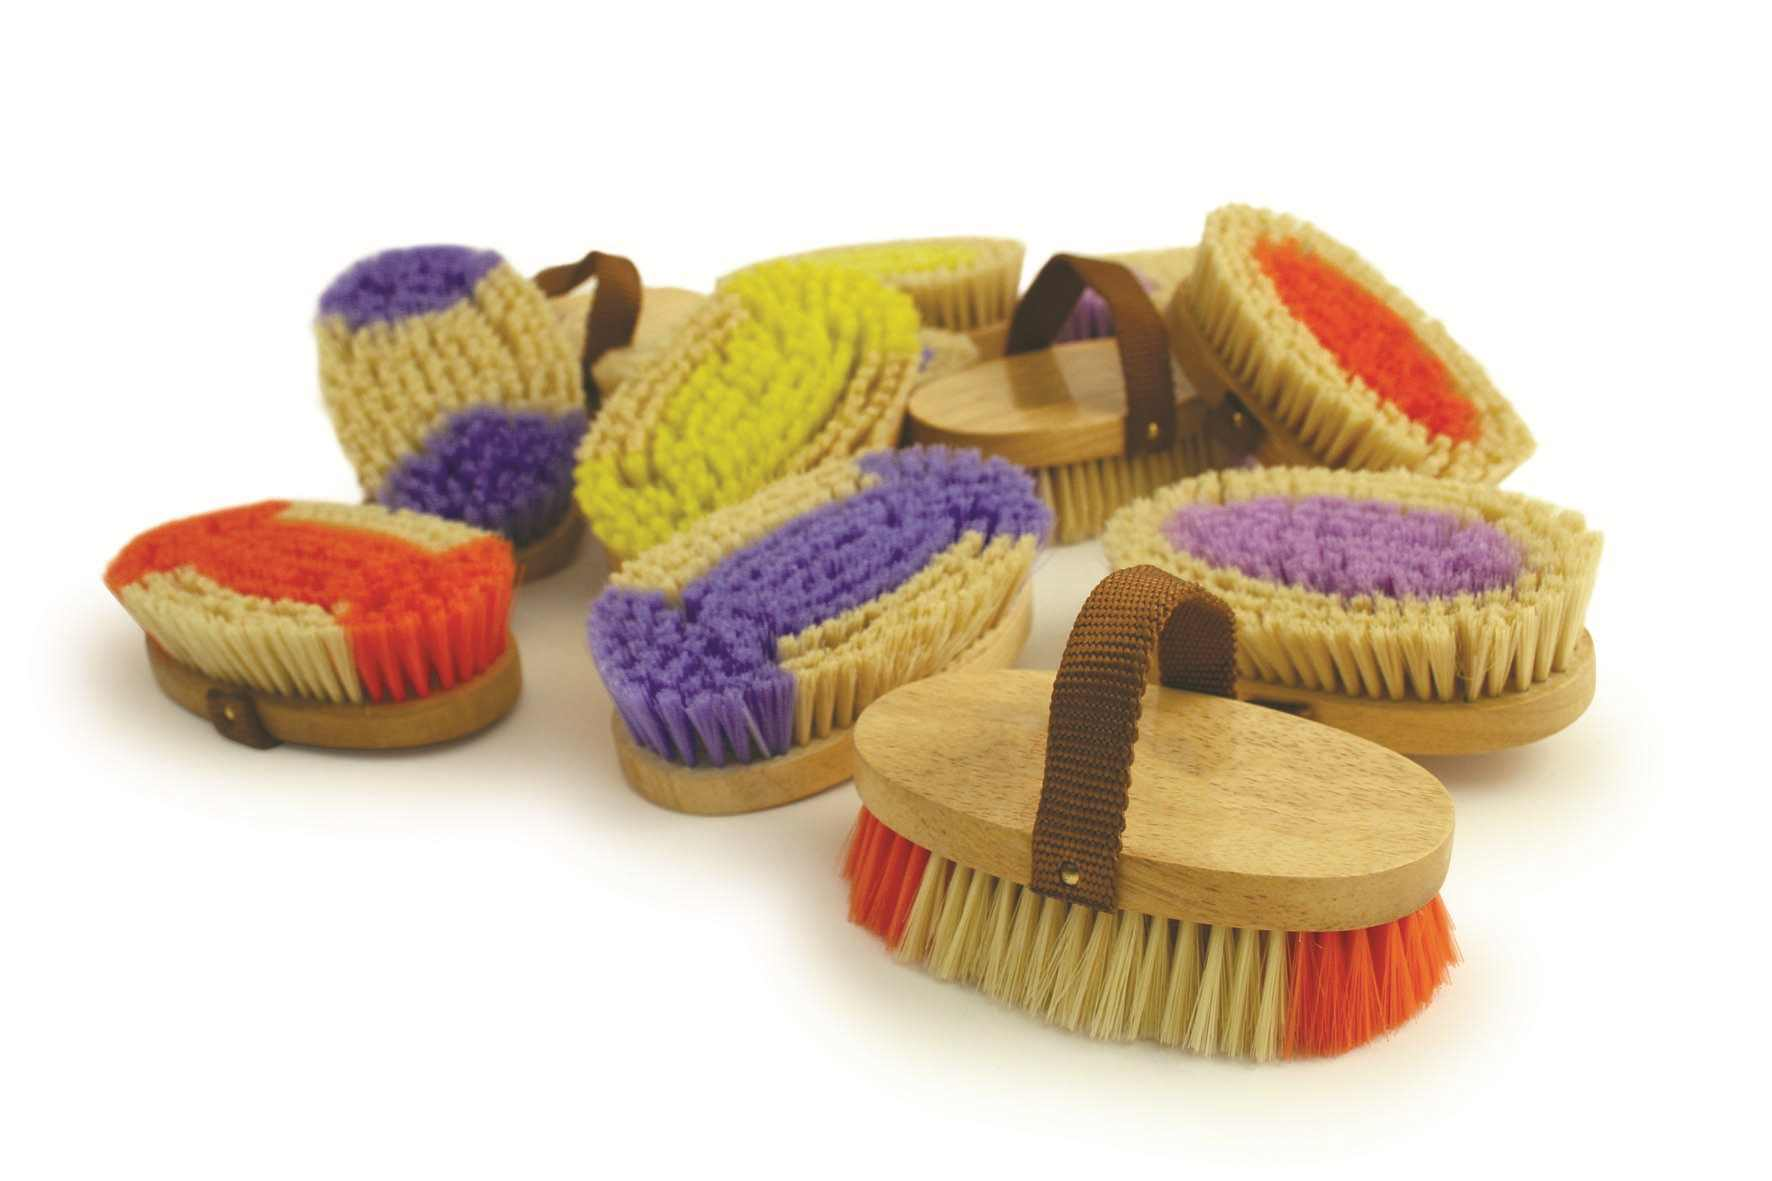 Ponyexpress Ladybug Mini-English Show Grooming Brush